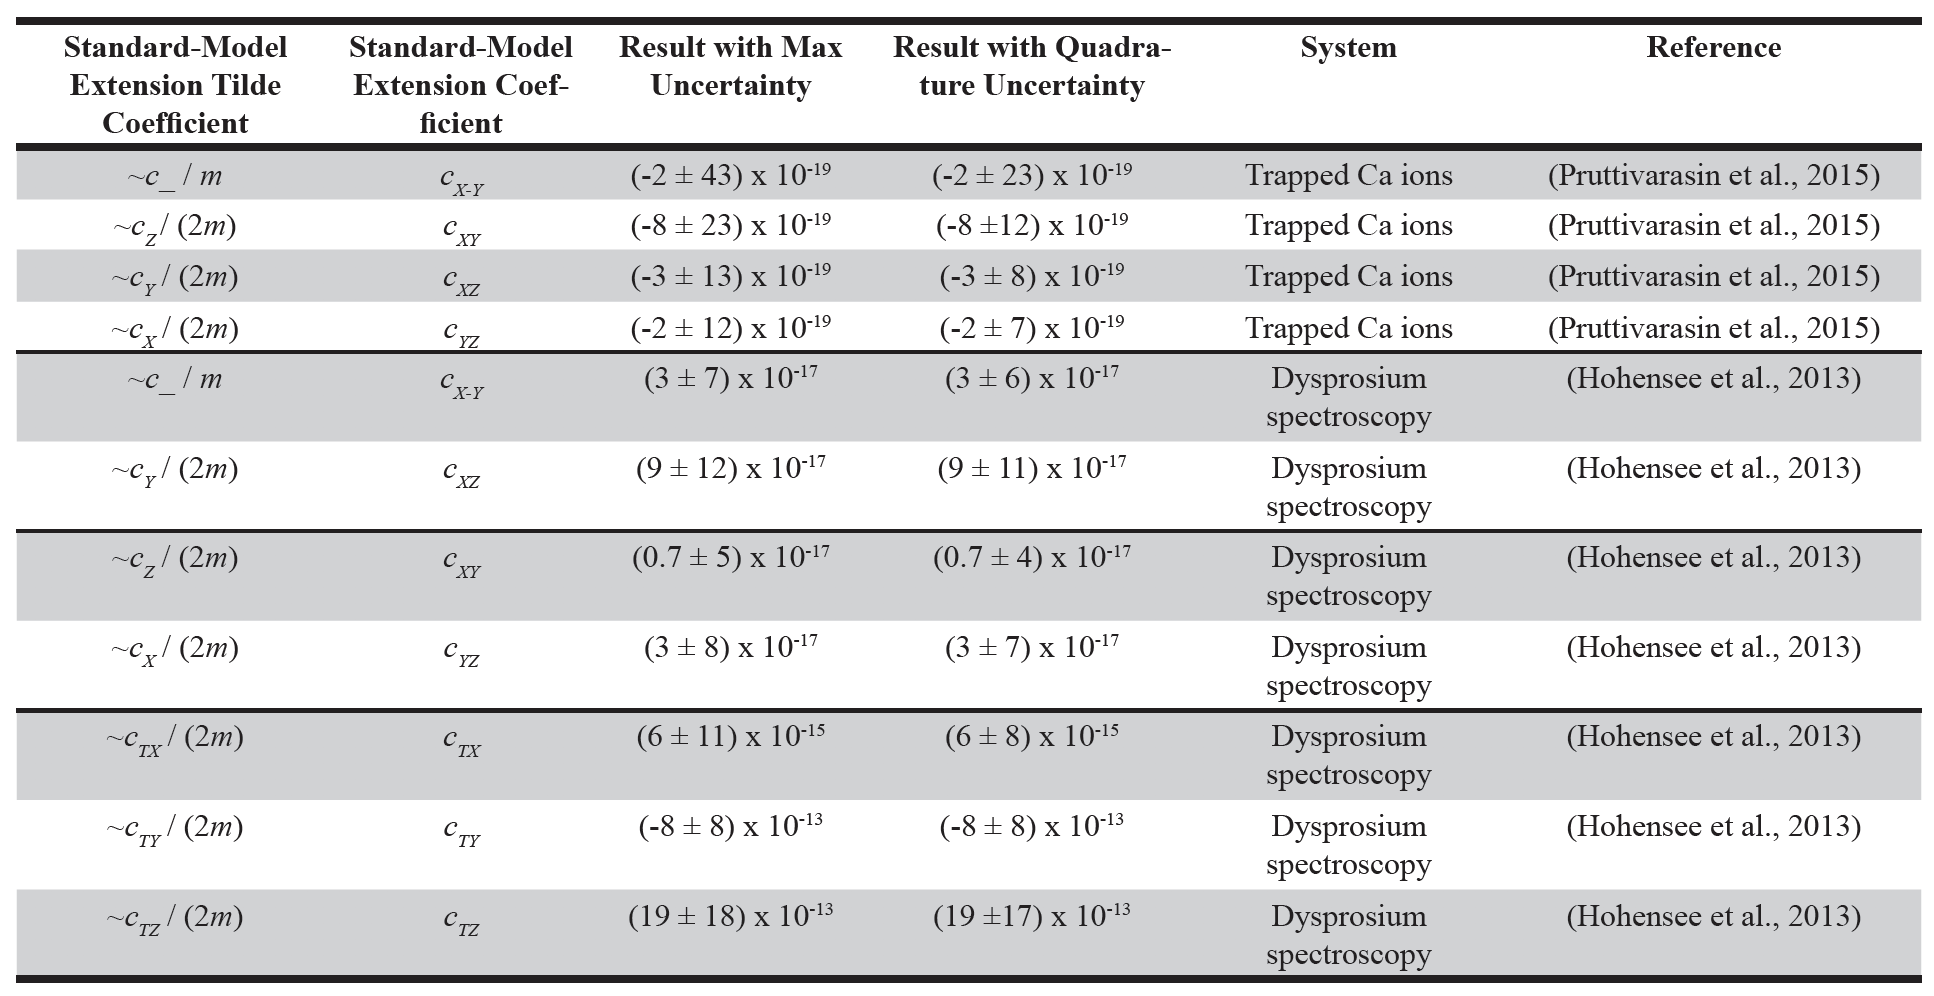 Table 1. Untangled bounds to electron-associated  c  coefficients.  The tilde coefficients are linear combinations of the base coefficients, and are defined in Table P41 of the Data Tables (Kolselecky & Russell, 2011).